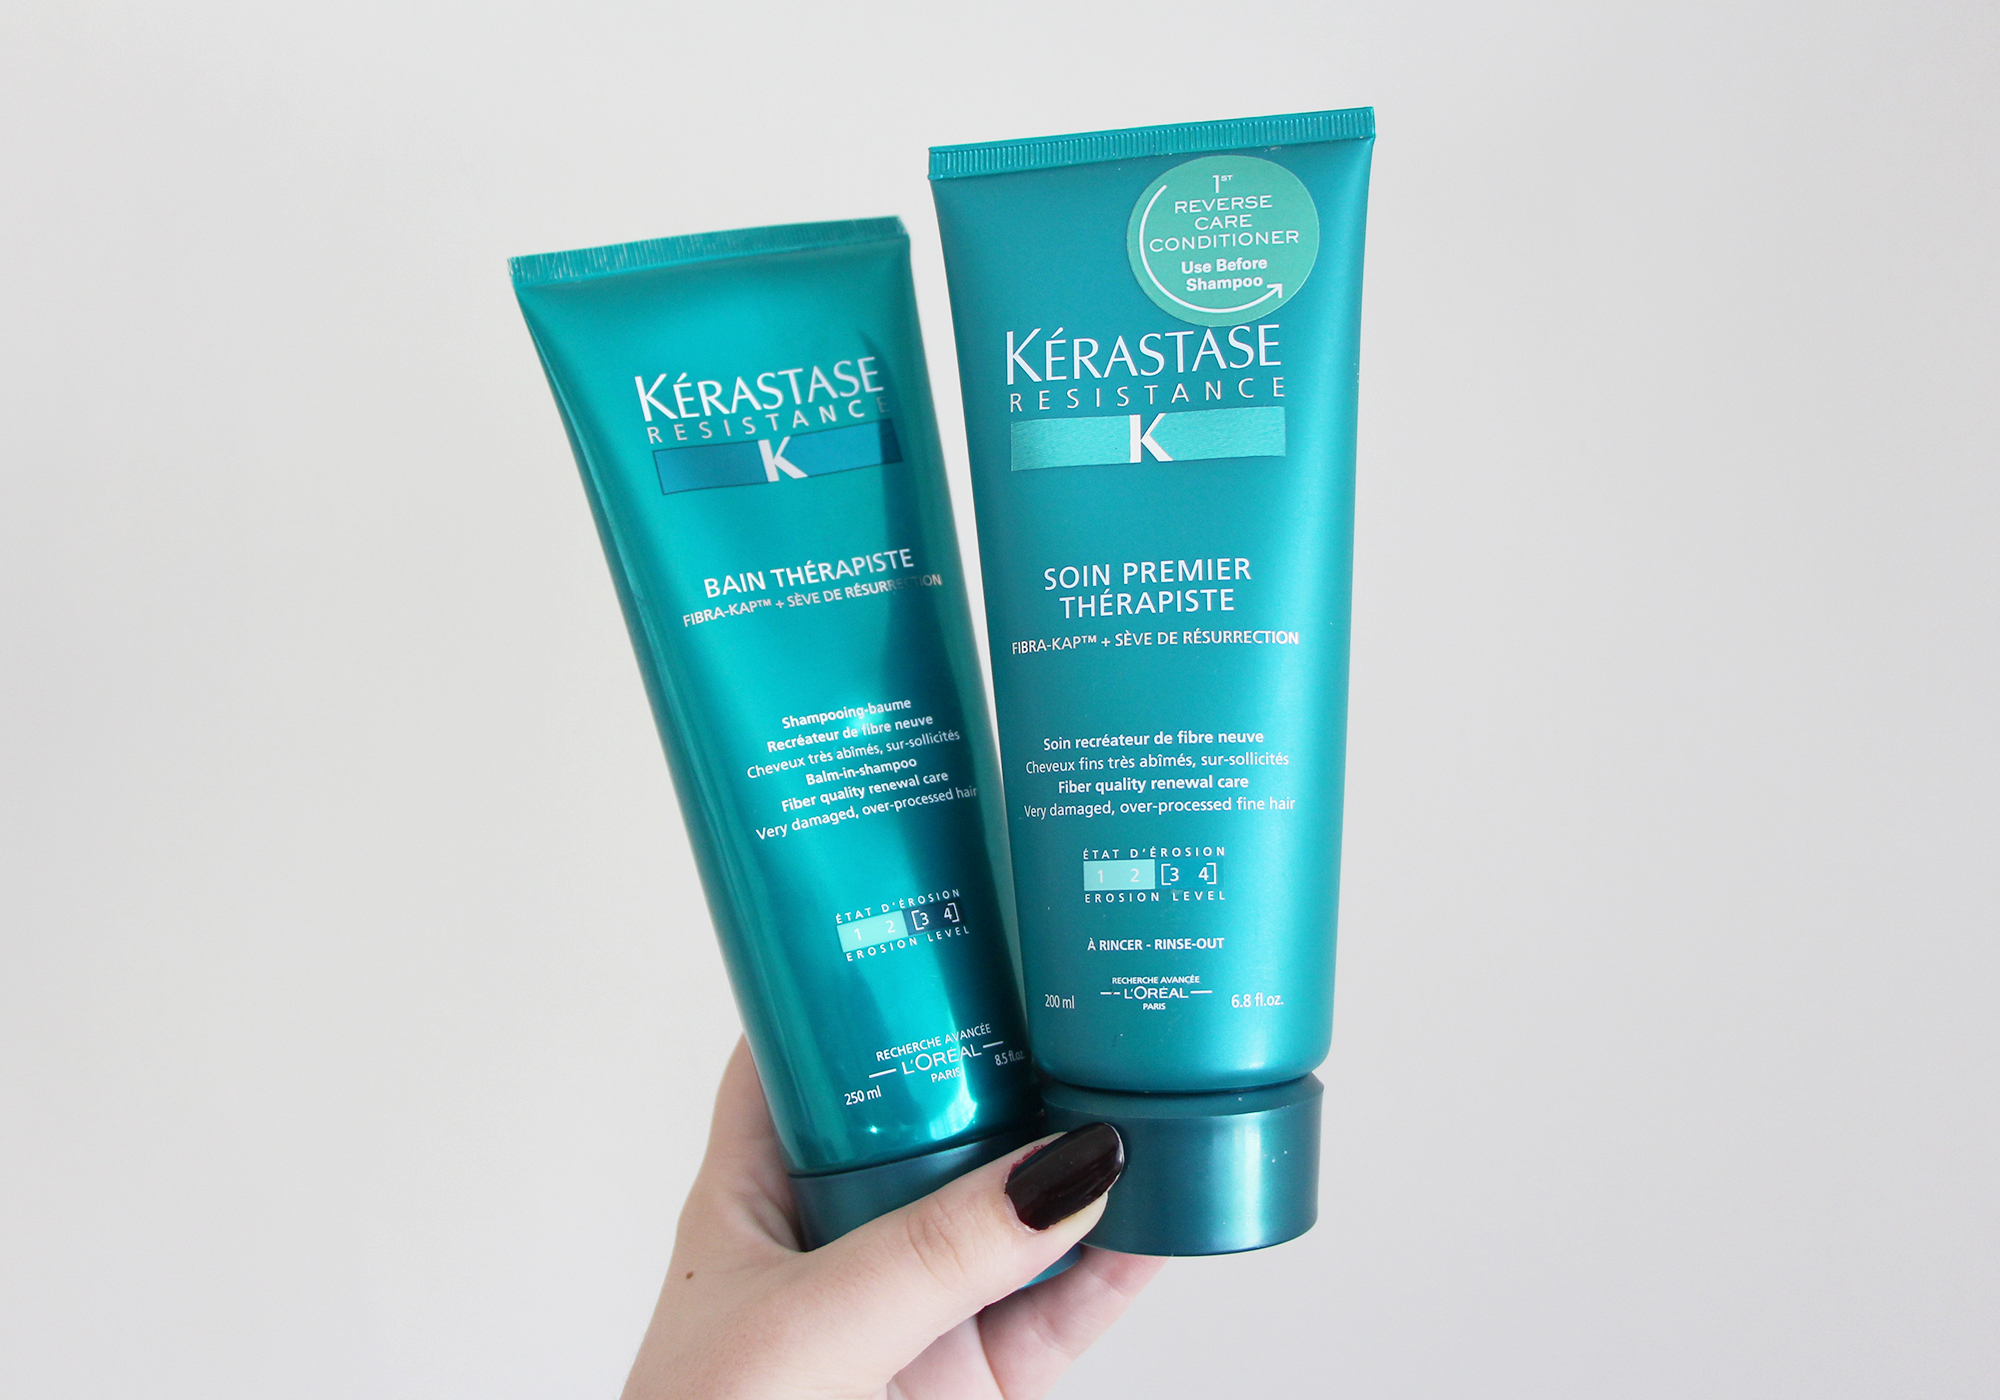 k rastase resistance bain therapiste shampoo conditioner review. Black Bedroom Furniture Sets. Home Design Ideas